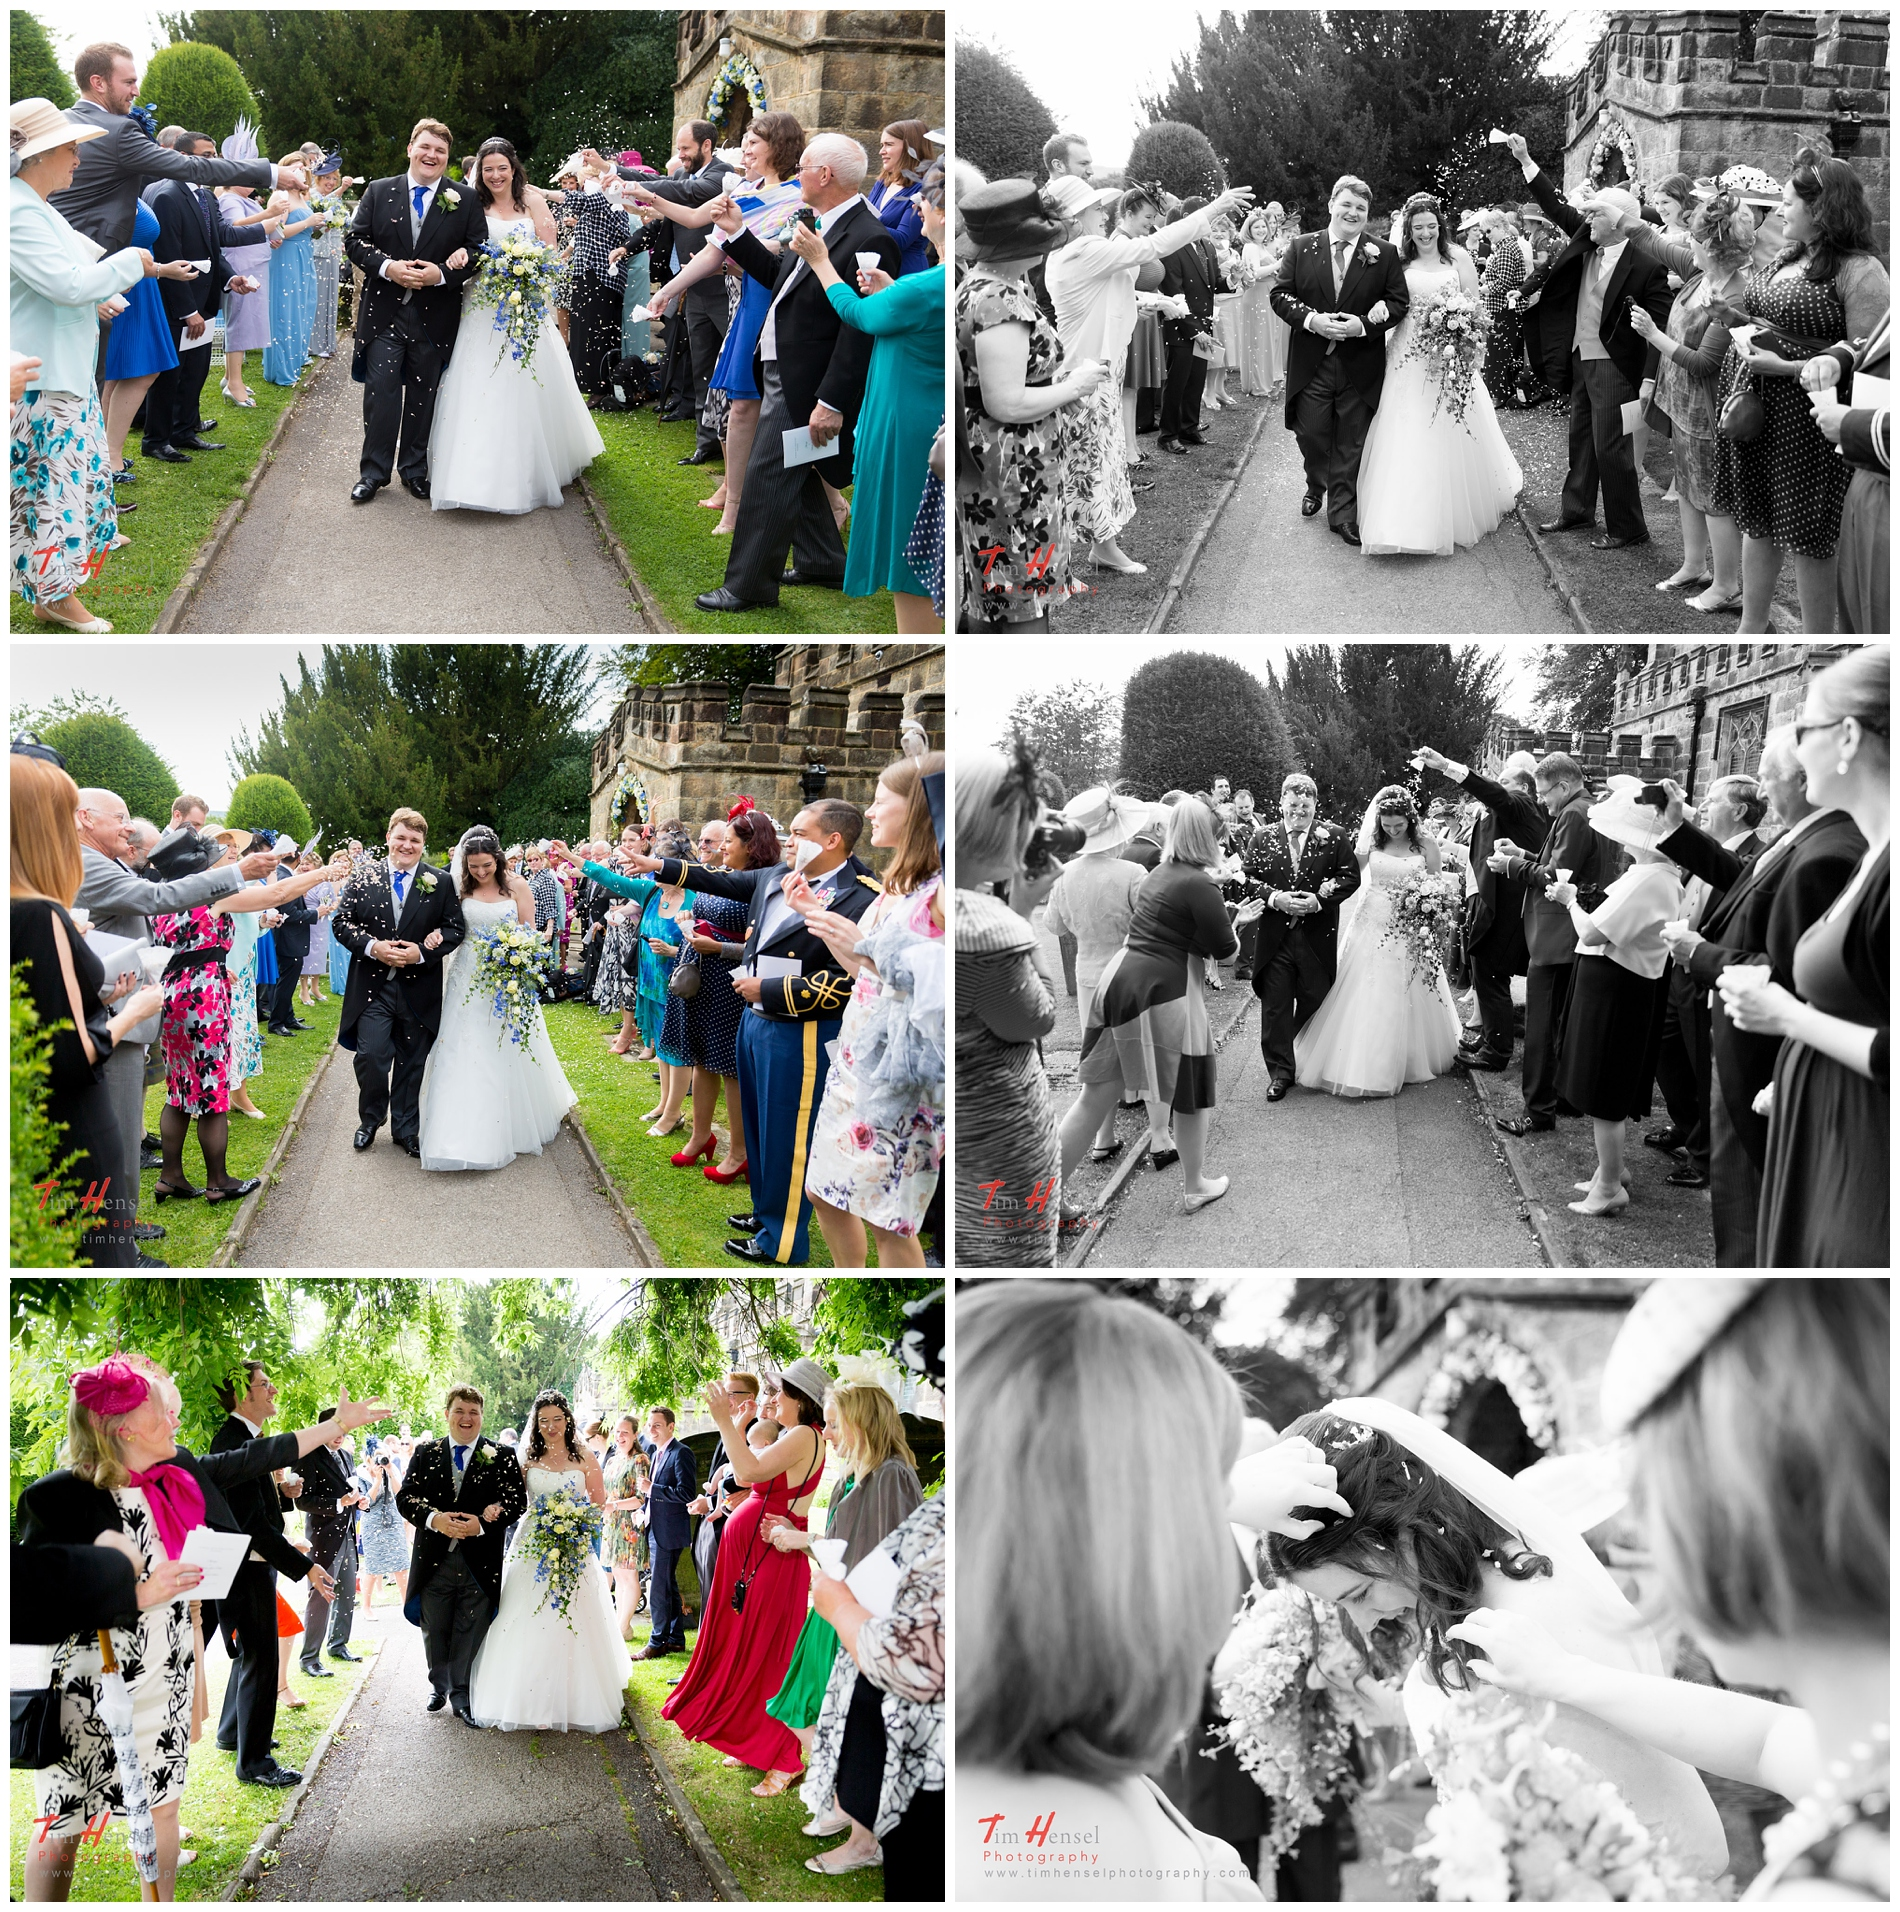 relaxed wedding photography during the confetti at st michael & all angels church in hathersage, derbyshire